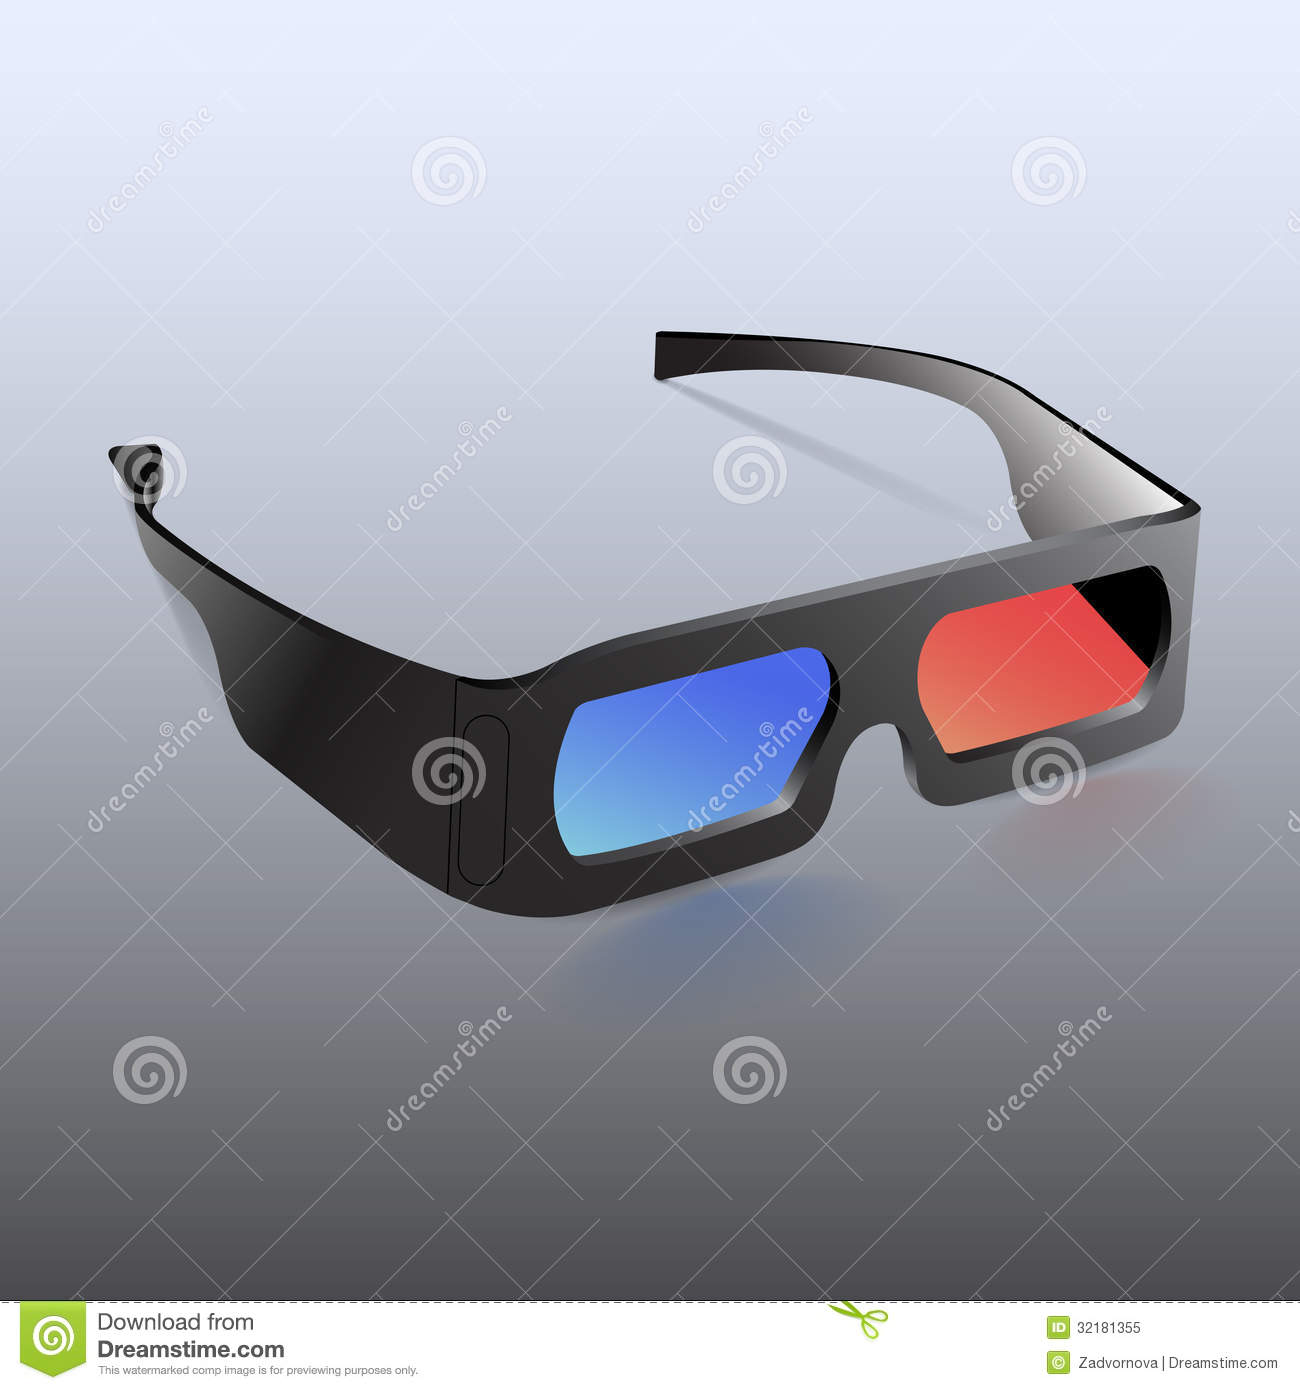 3d Glasses Royalty Free Stock Photo - Image: 32181355